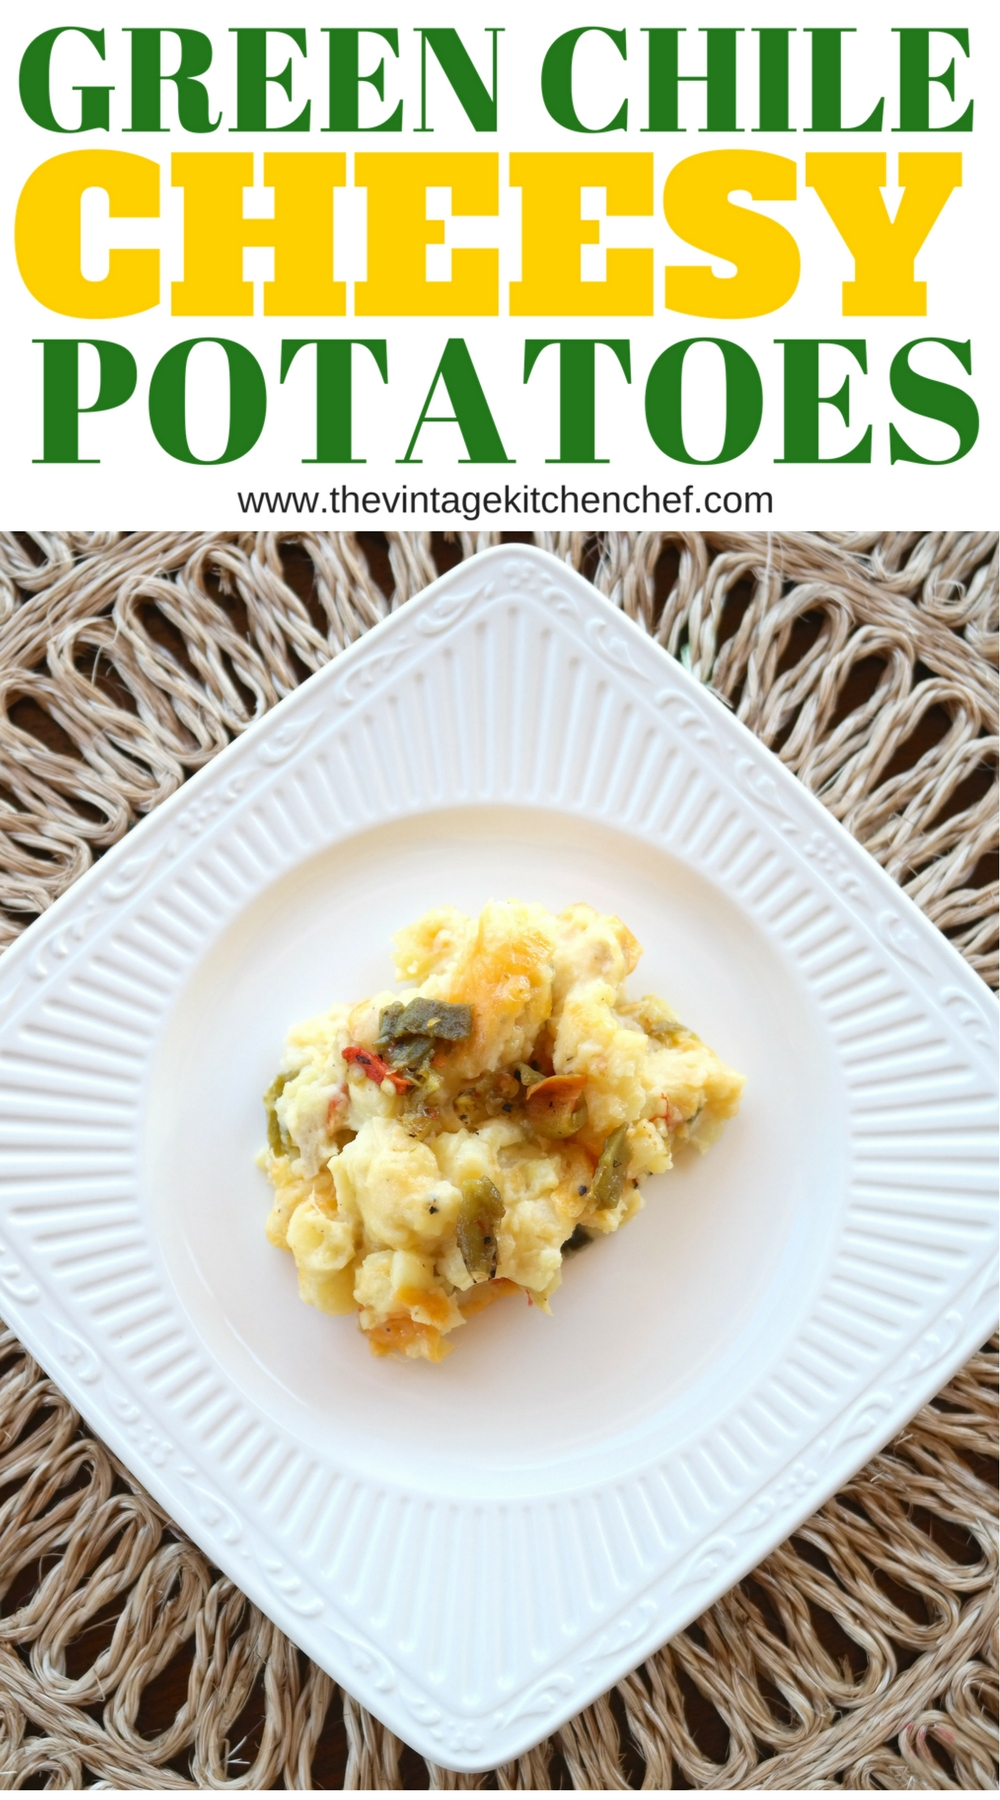 Green Chile Cheesy Potatoes are the ultimate fort food